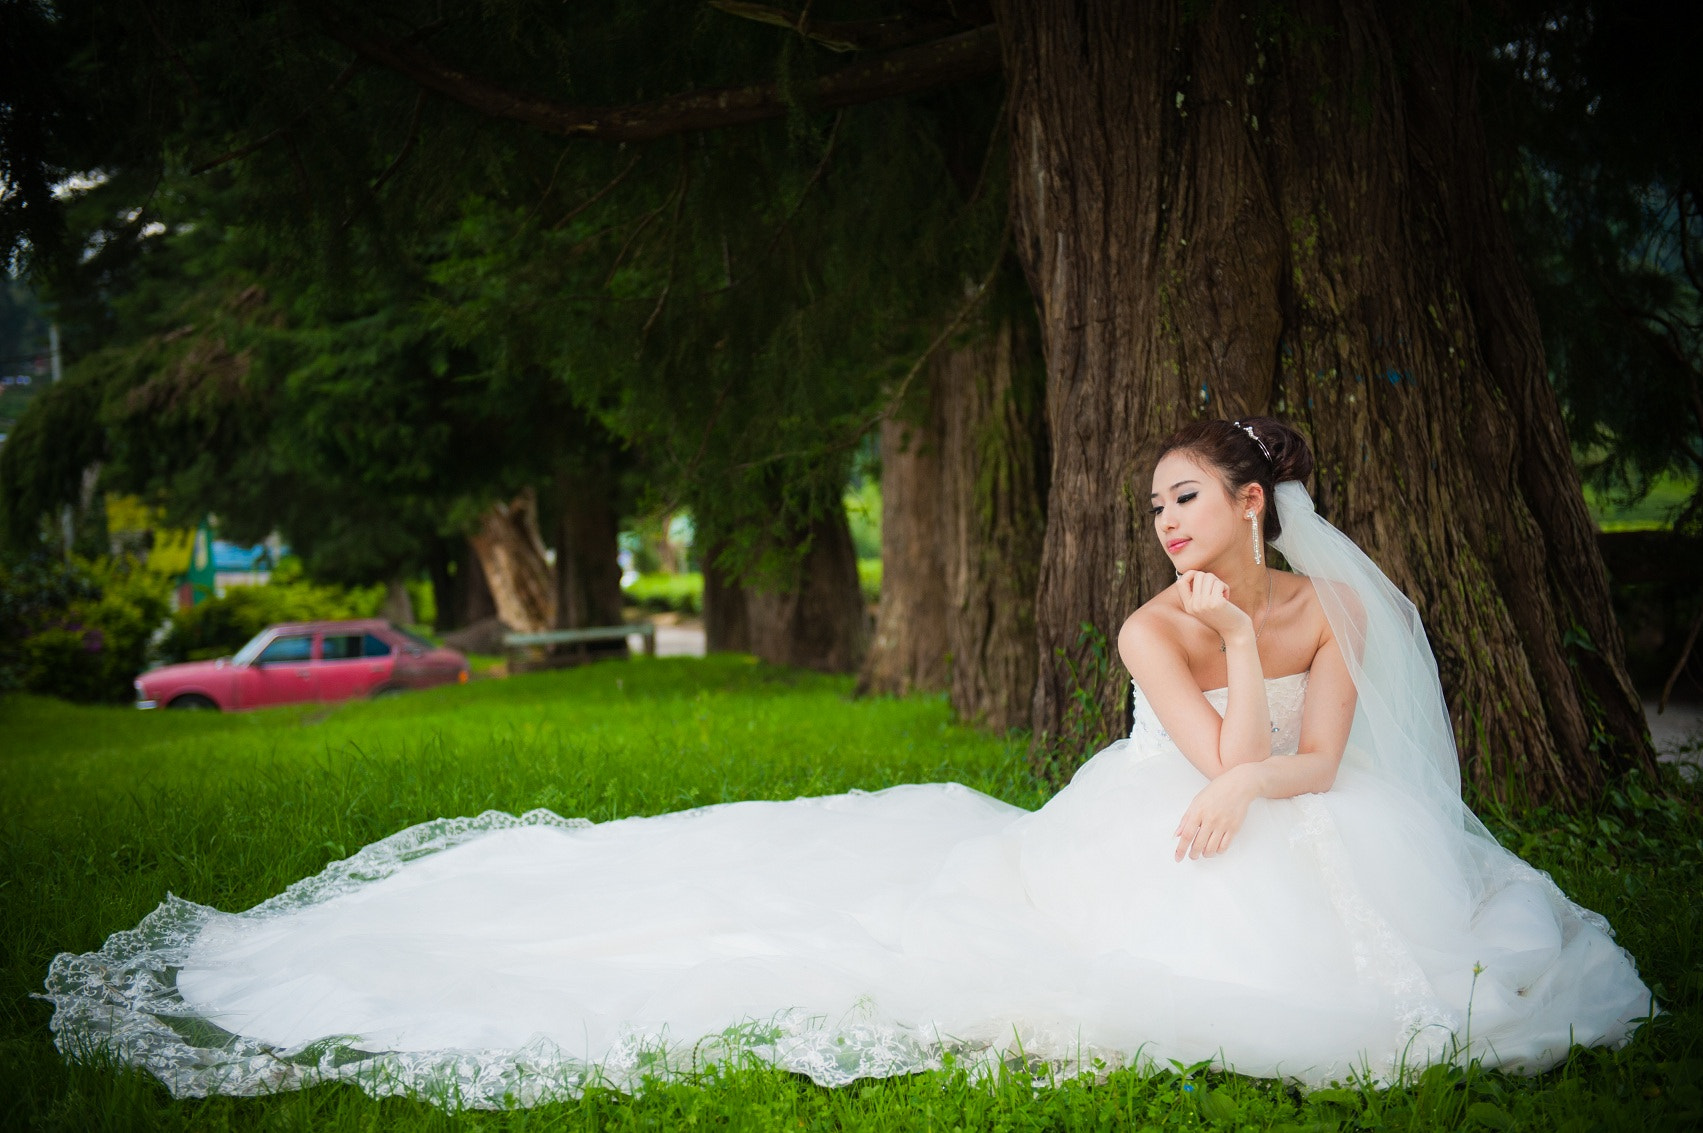 Photograph Wedding portraits by Benson Yin on 500px